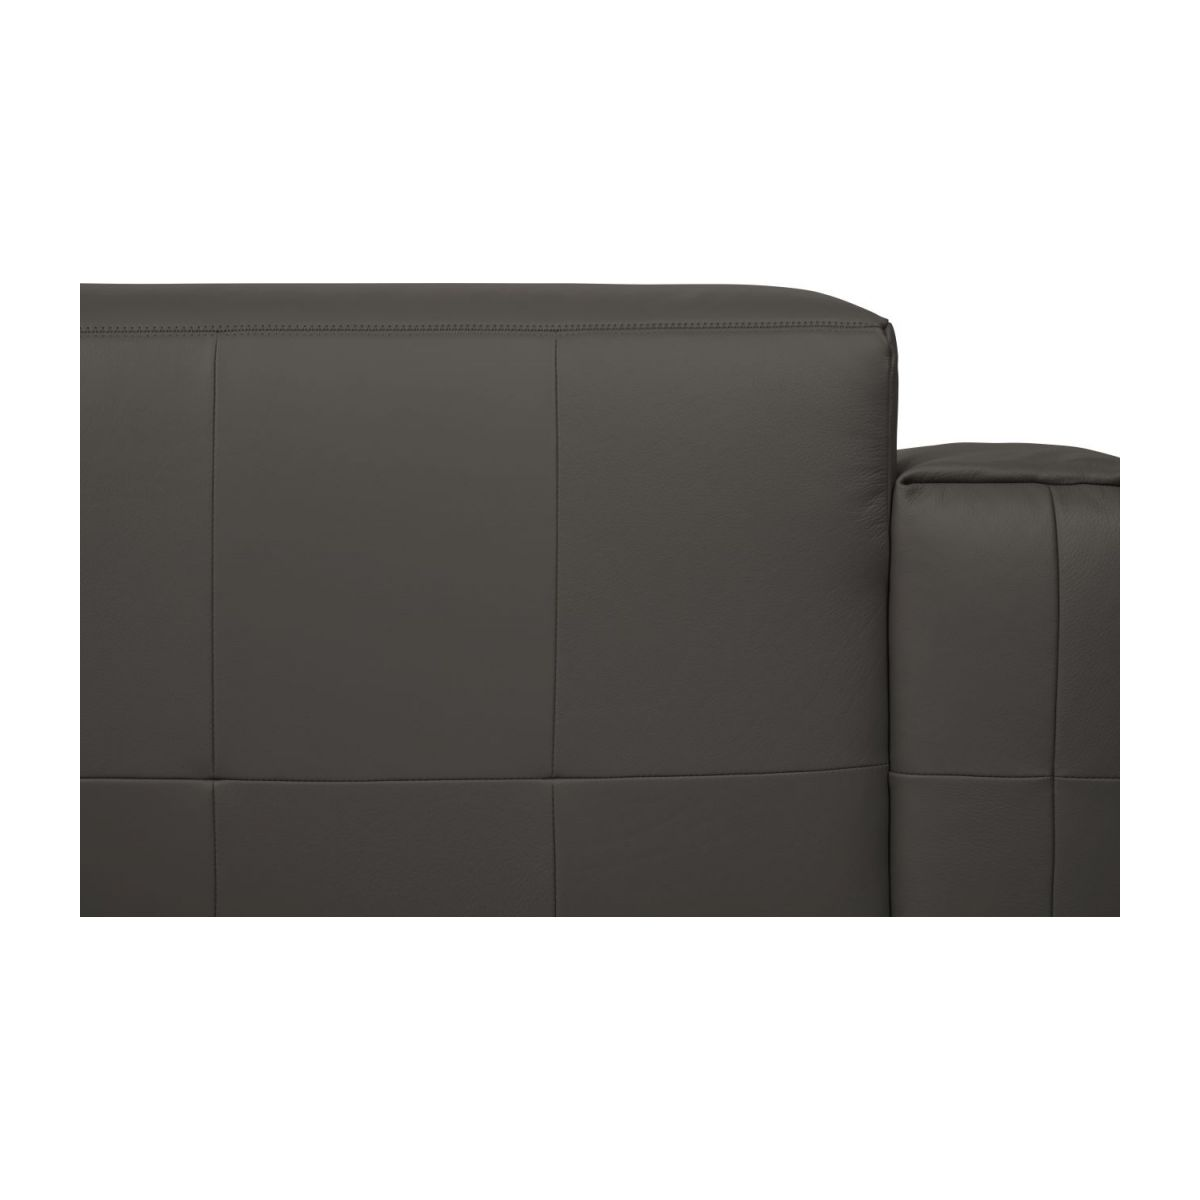 3 seater sofa in Savoy semi-aniline leather, dark brown amaretto n°10